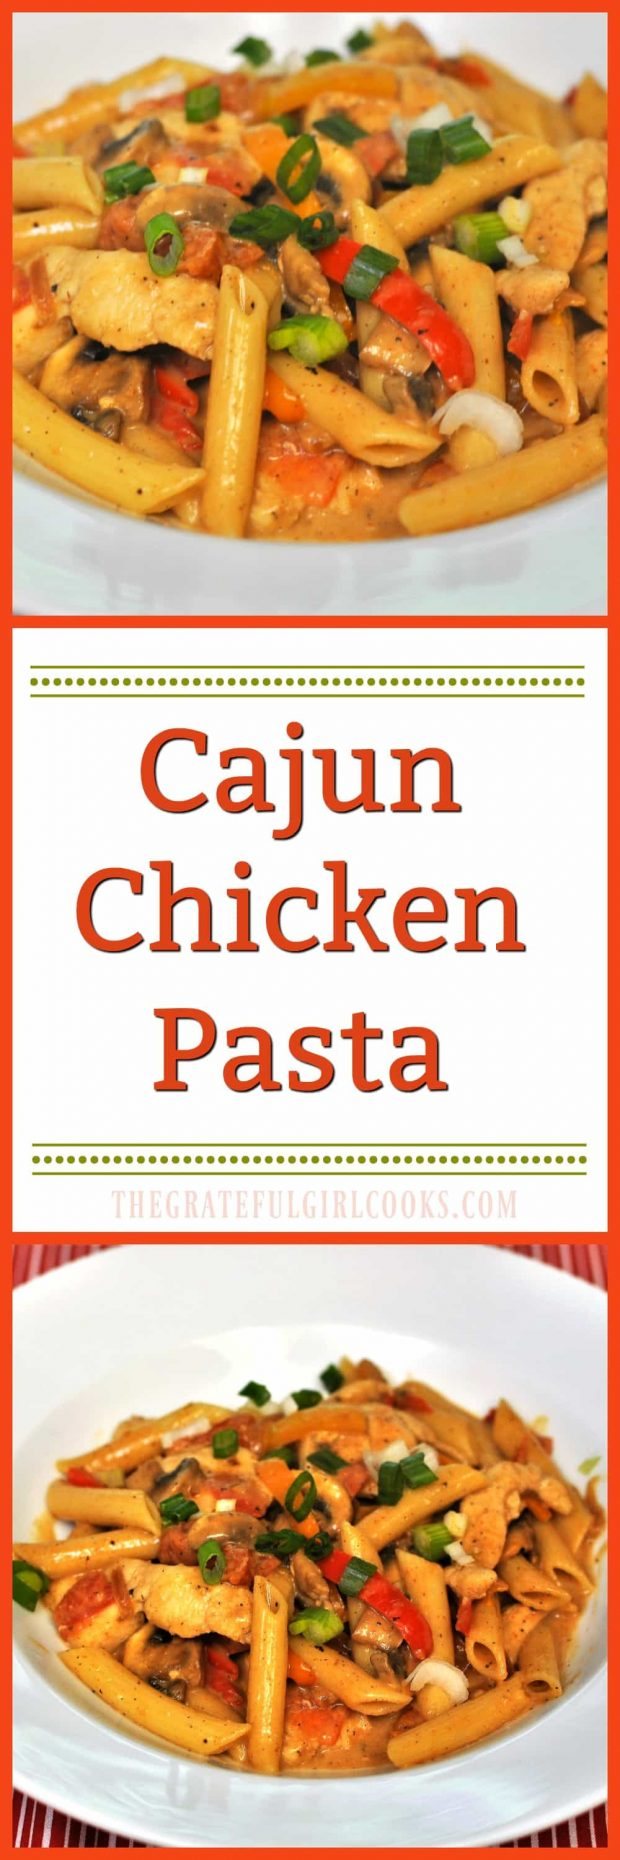 "Cajun Chicken Pasta / The Grateful Girl Cooks! This ""lightened-up"" dish is packed with veggies, chicken and great flavor!"